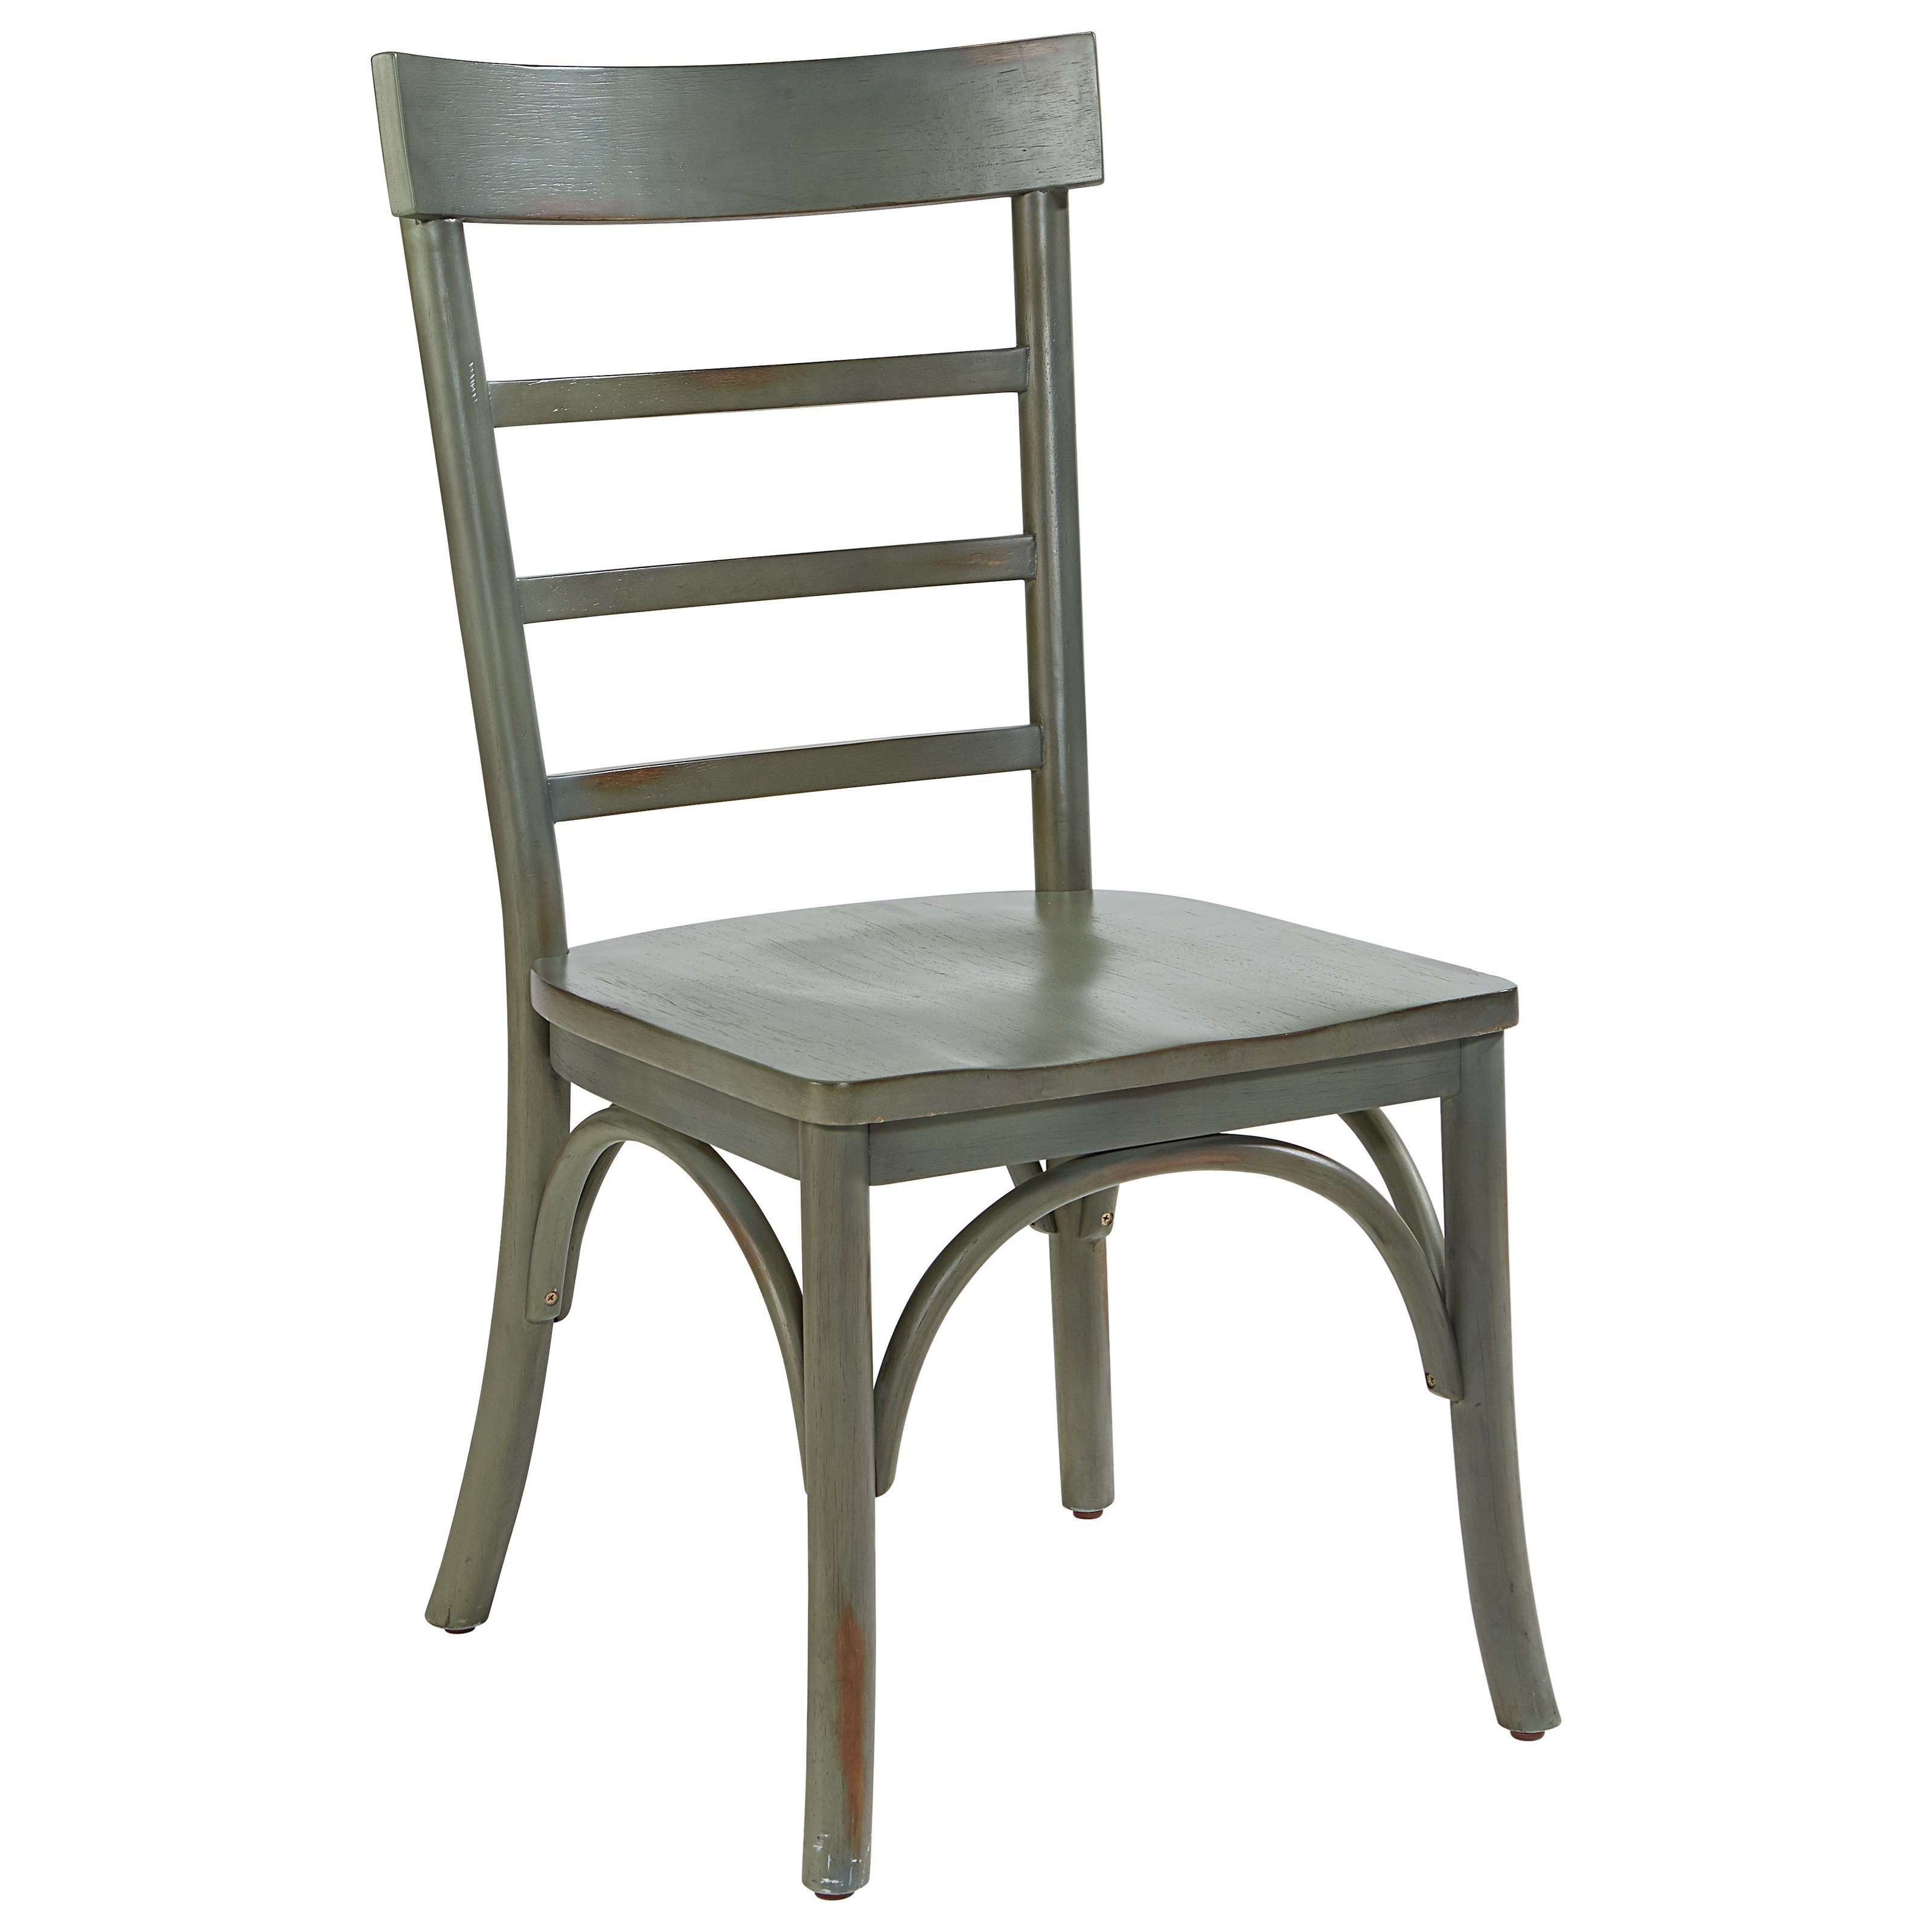 7 39 Dining Table And Chair Set By Magnolia Home By Joanna Gaines Wolf And Gardiner Wolf Furniture